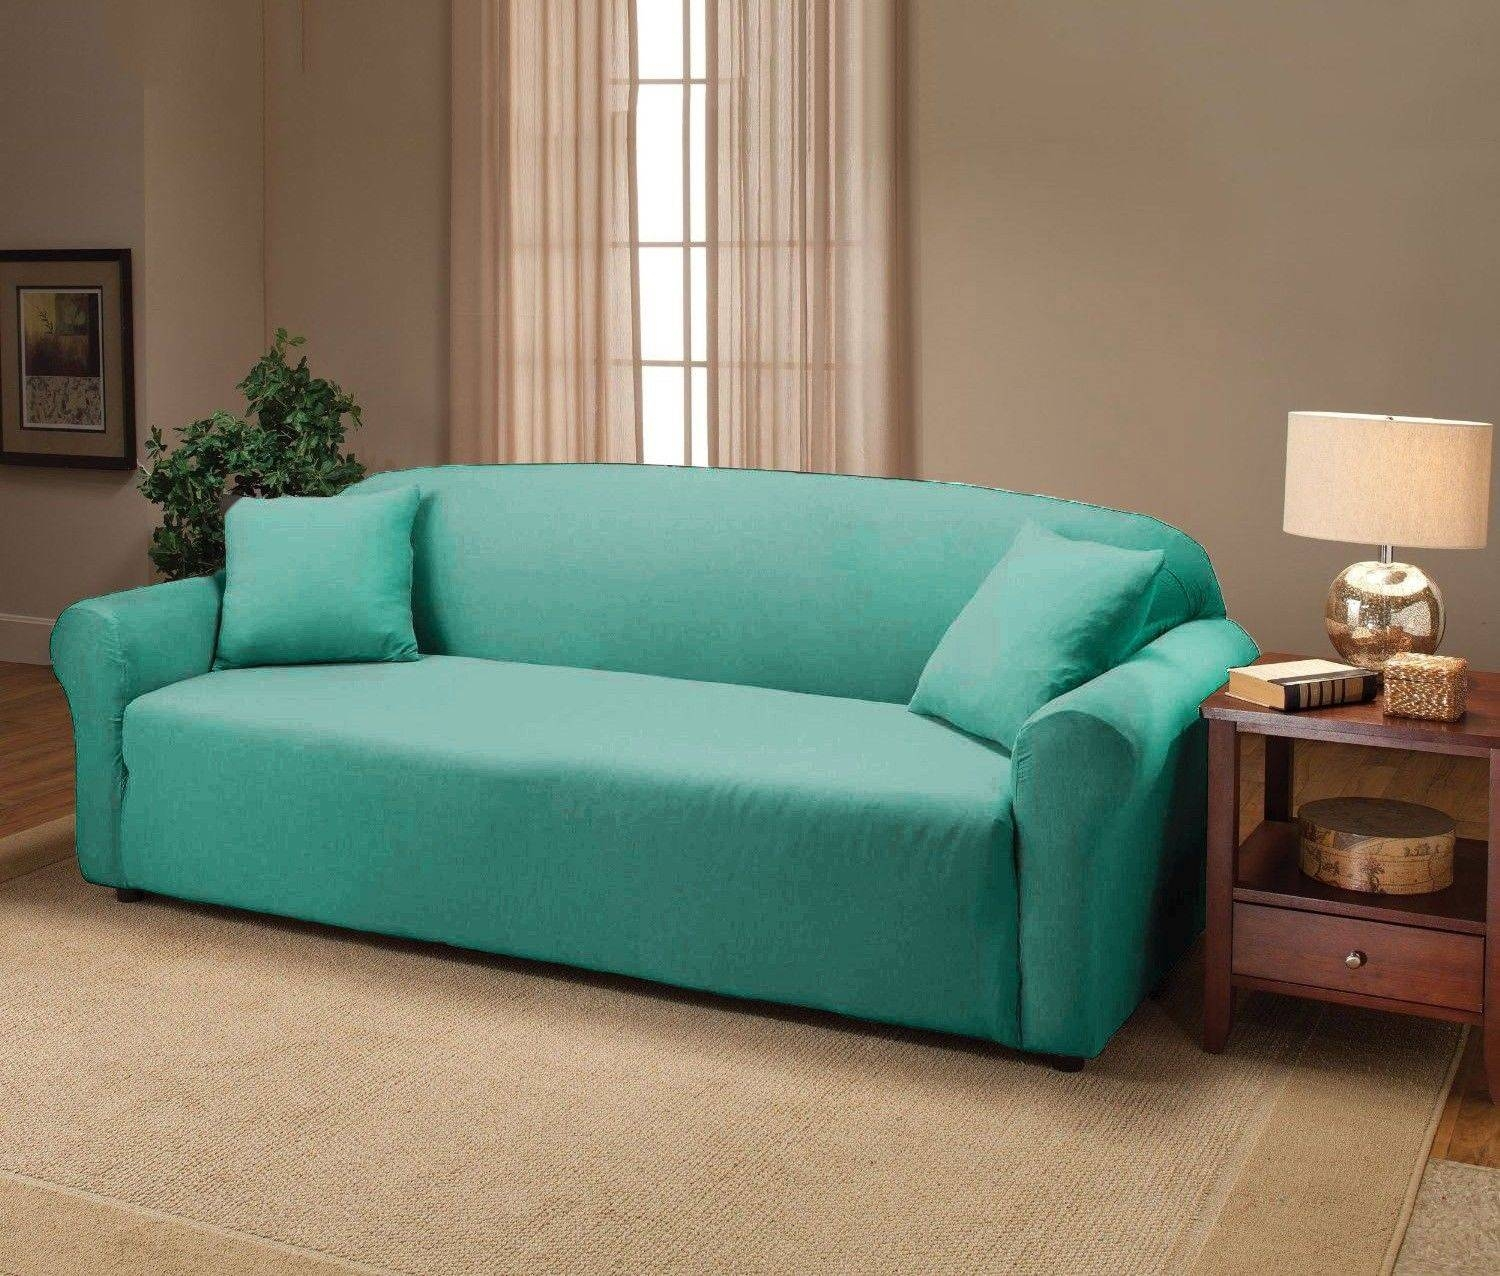 Fine Couch Covers With Recliners Size Of Living Roomdual Reclining for Turquoise Sofa Covers (Image 6 of 30)